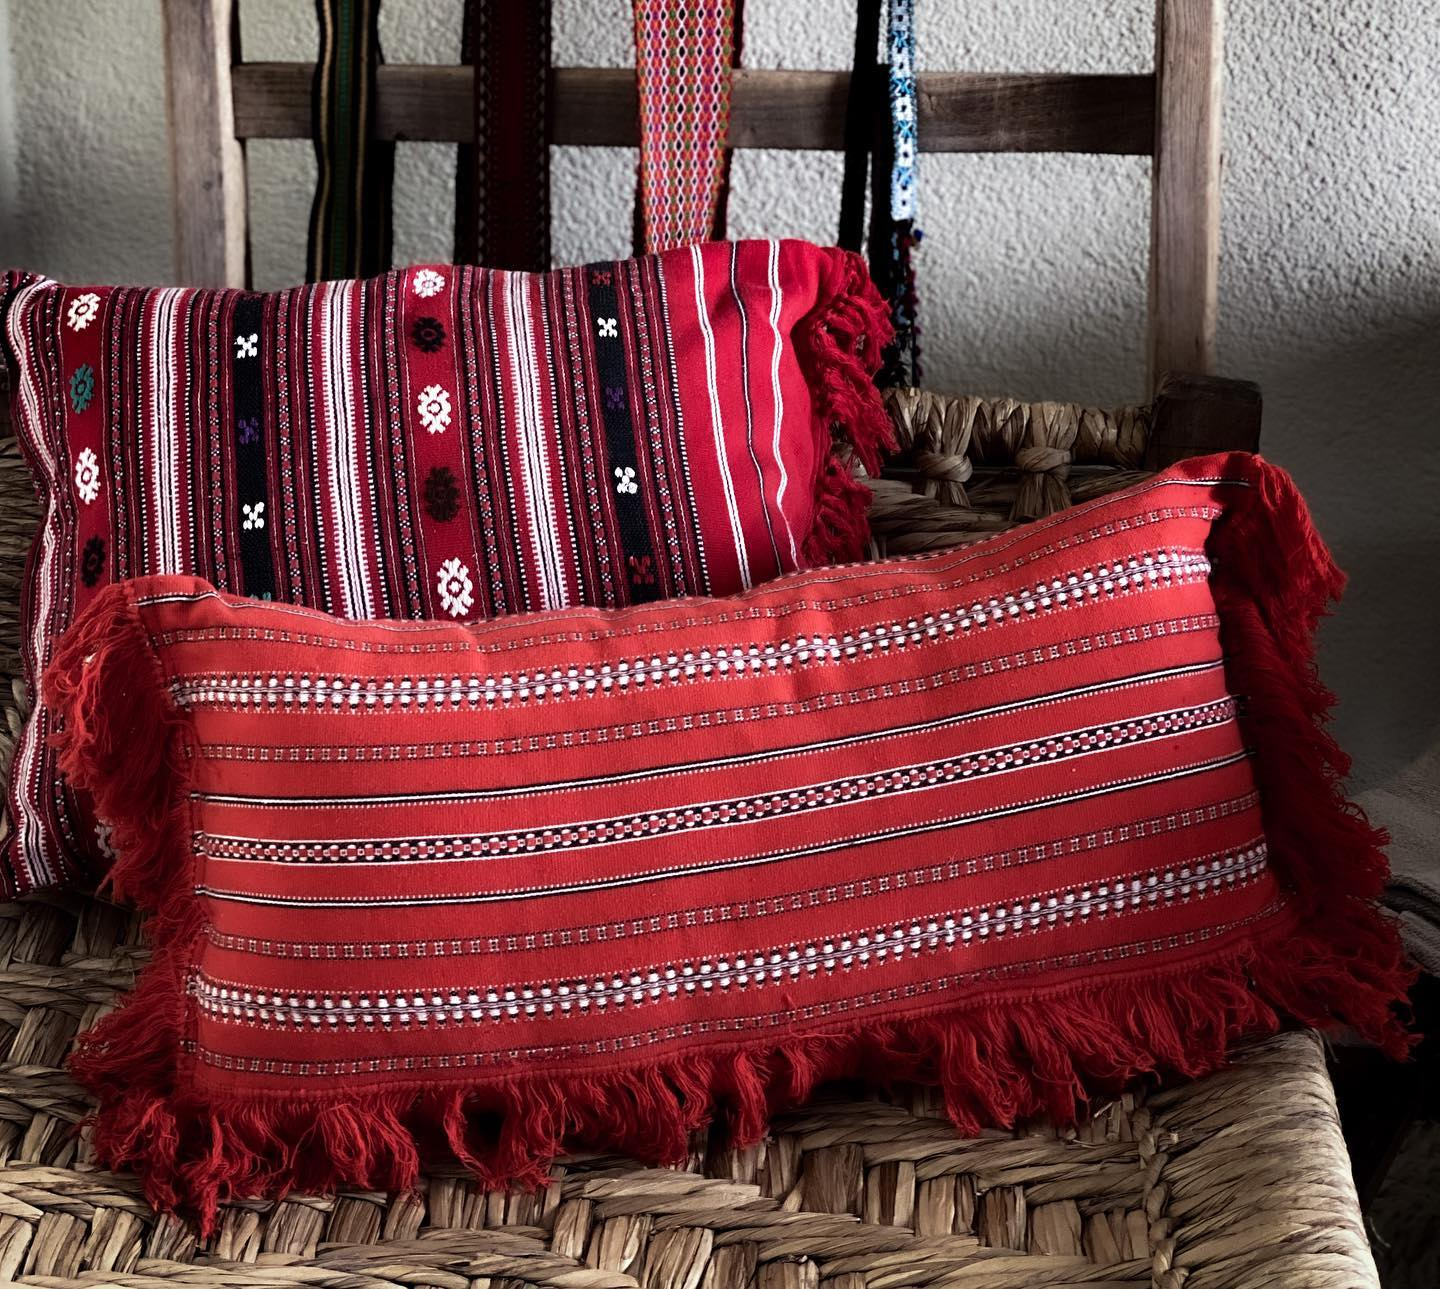 Pillow: Vintage handwoven Bulgarian cotton